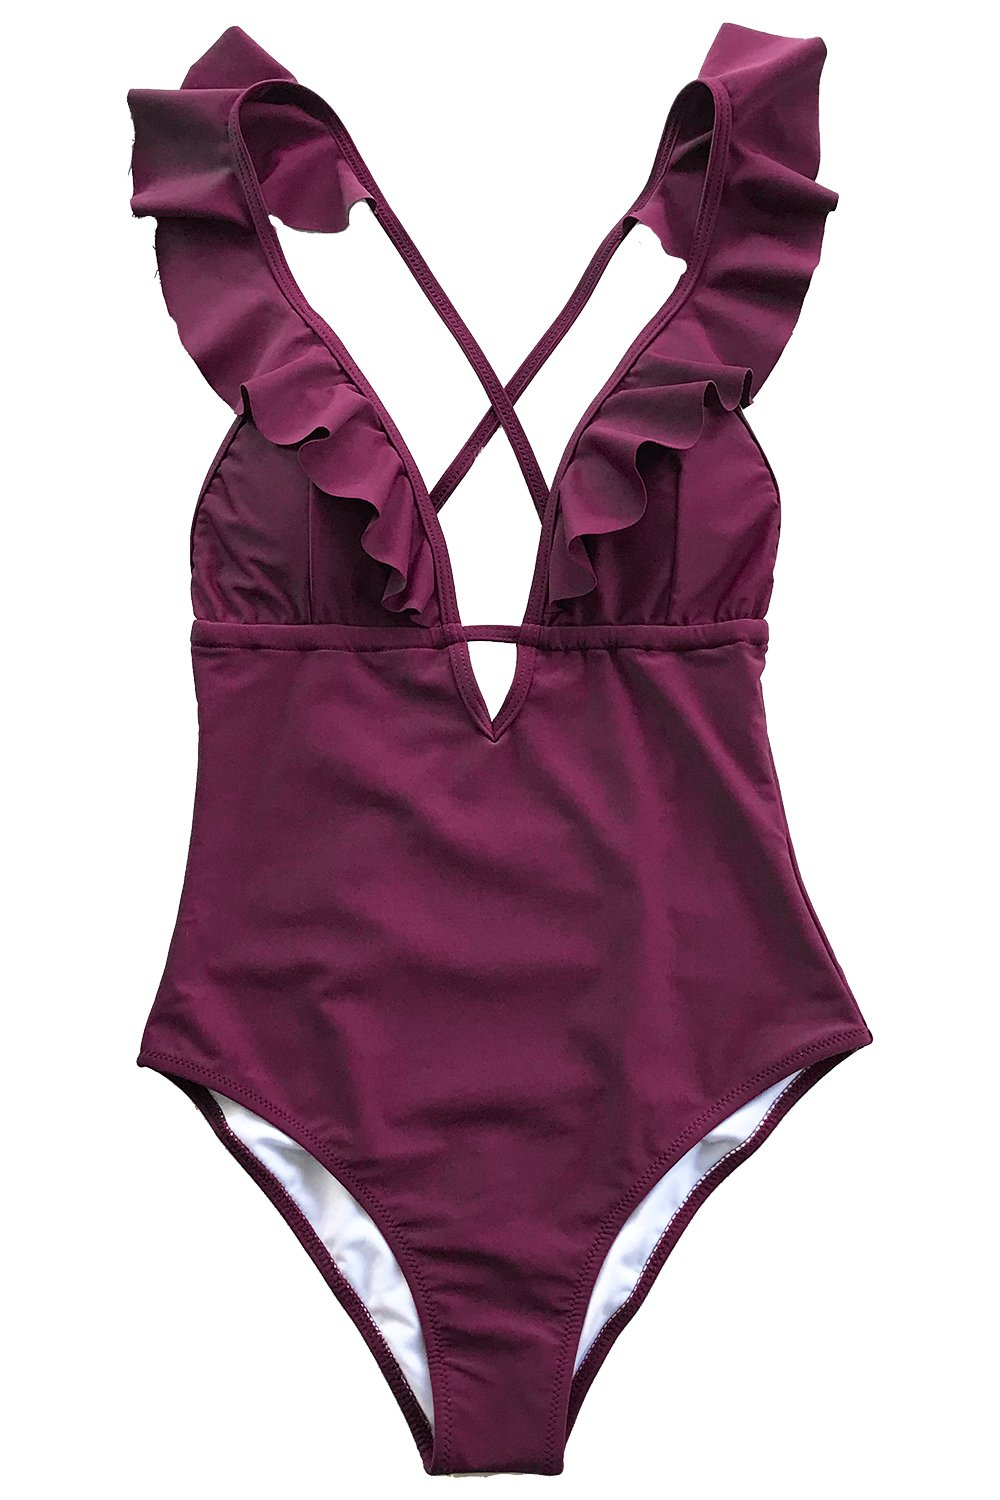 CUPSHE Heart Attack Falbala One-Piece Swimsuit Beach Swimwear Deep V Neck Bikini Monokini Medium